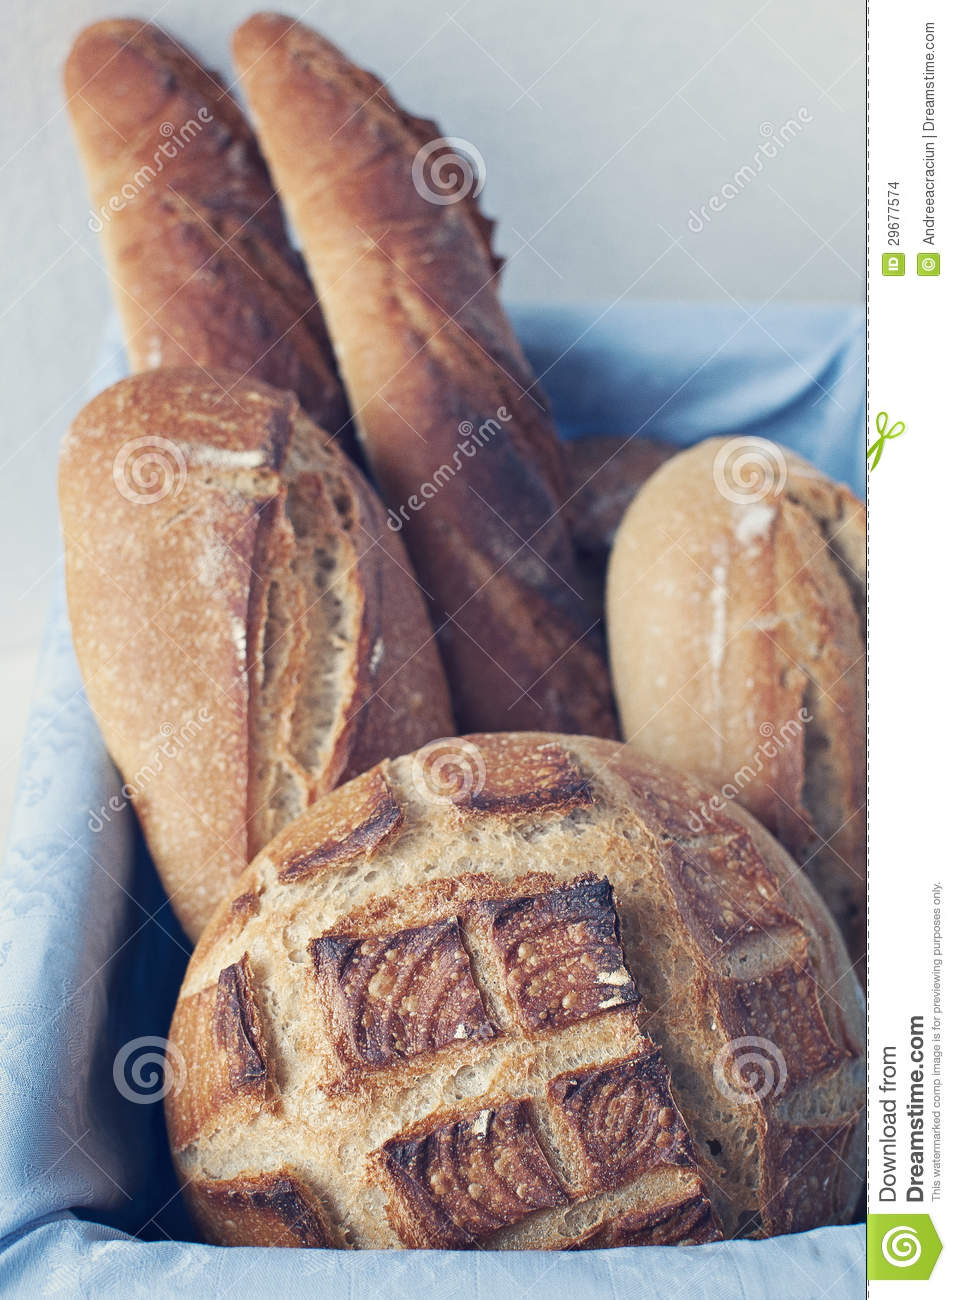 Artisan Bread In Basket Stock Photo Image Of Shaping